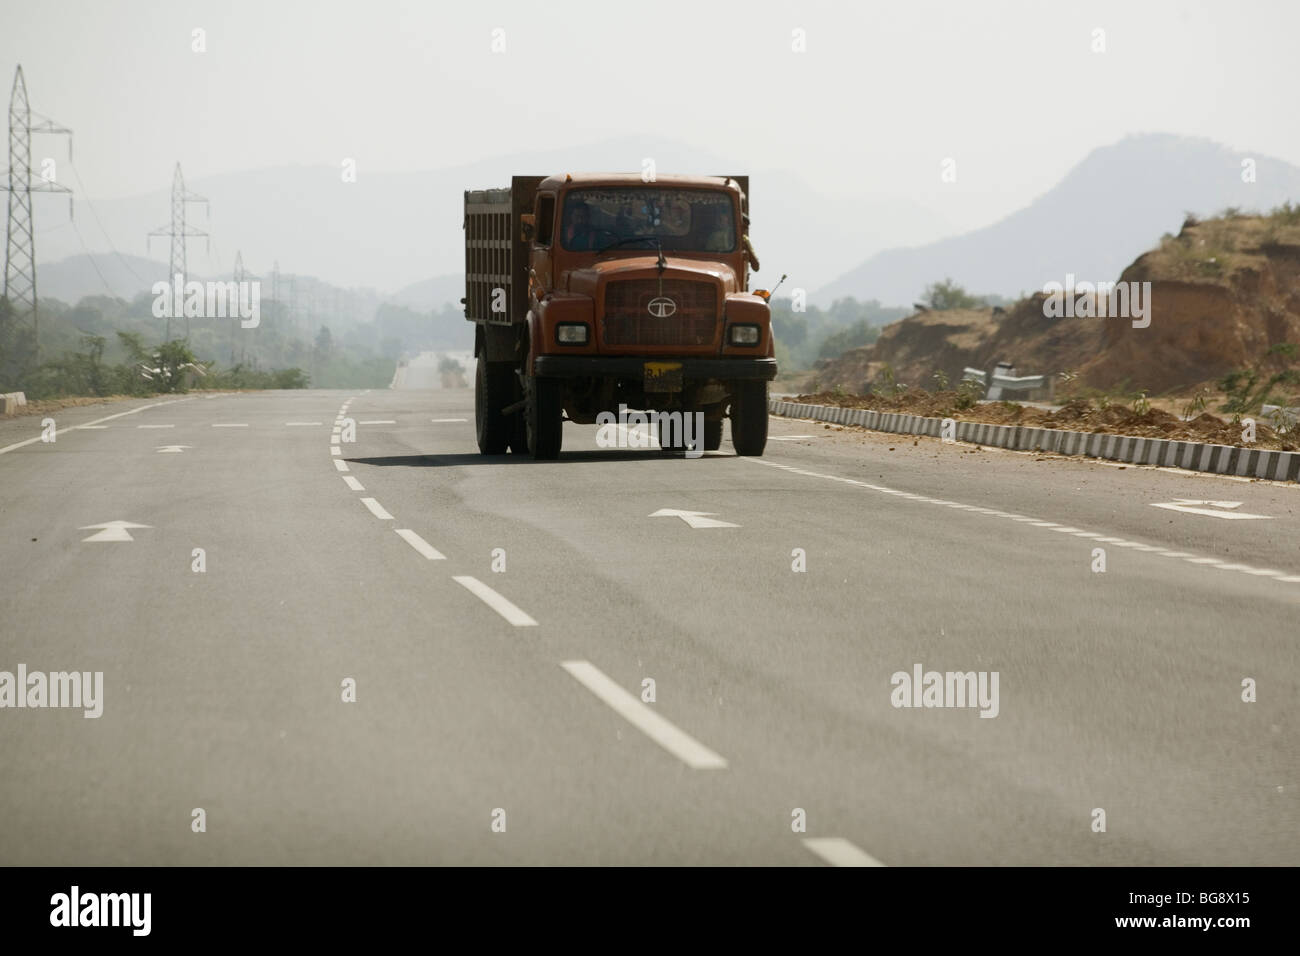 India Rajasthan truck driving against arrows, wrong way on road - Stock Image